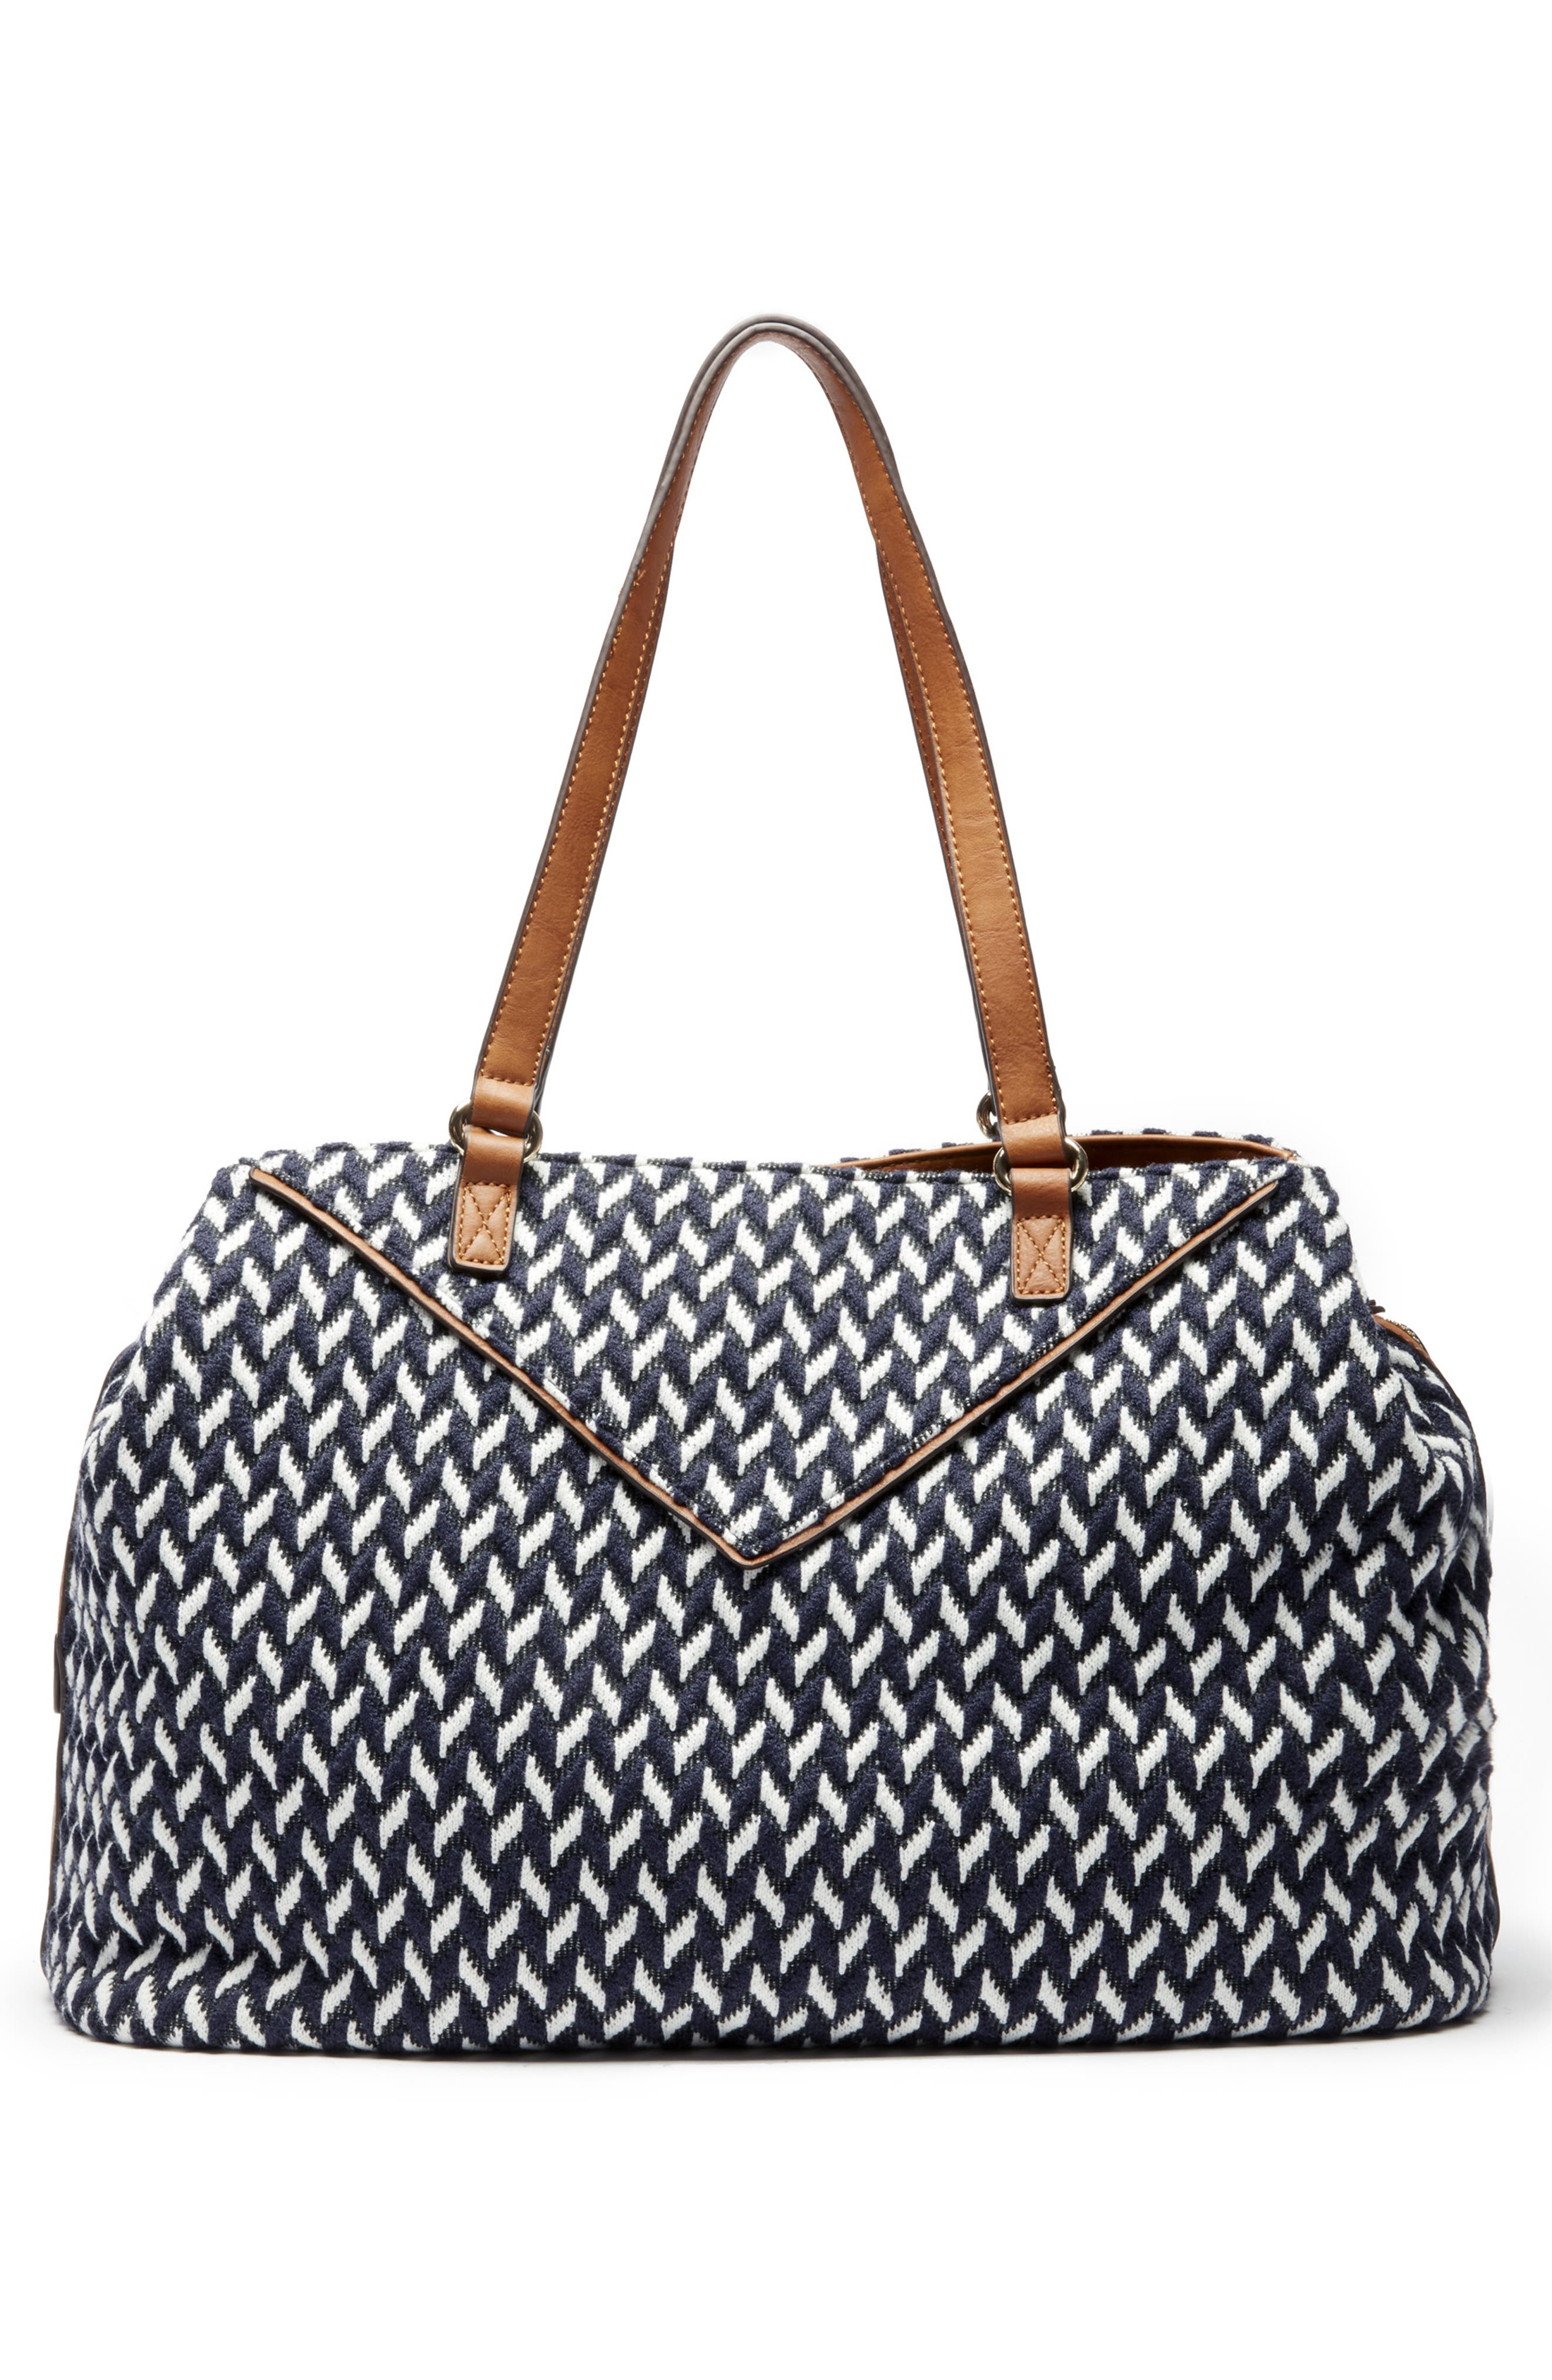 Ginny Woven Tote,                             Alternate thumbnail 2, color,                             NAVY COMBO